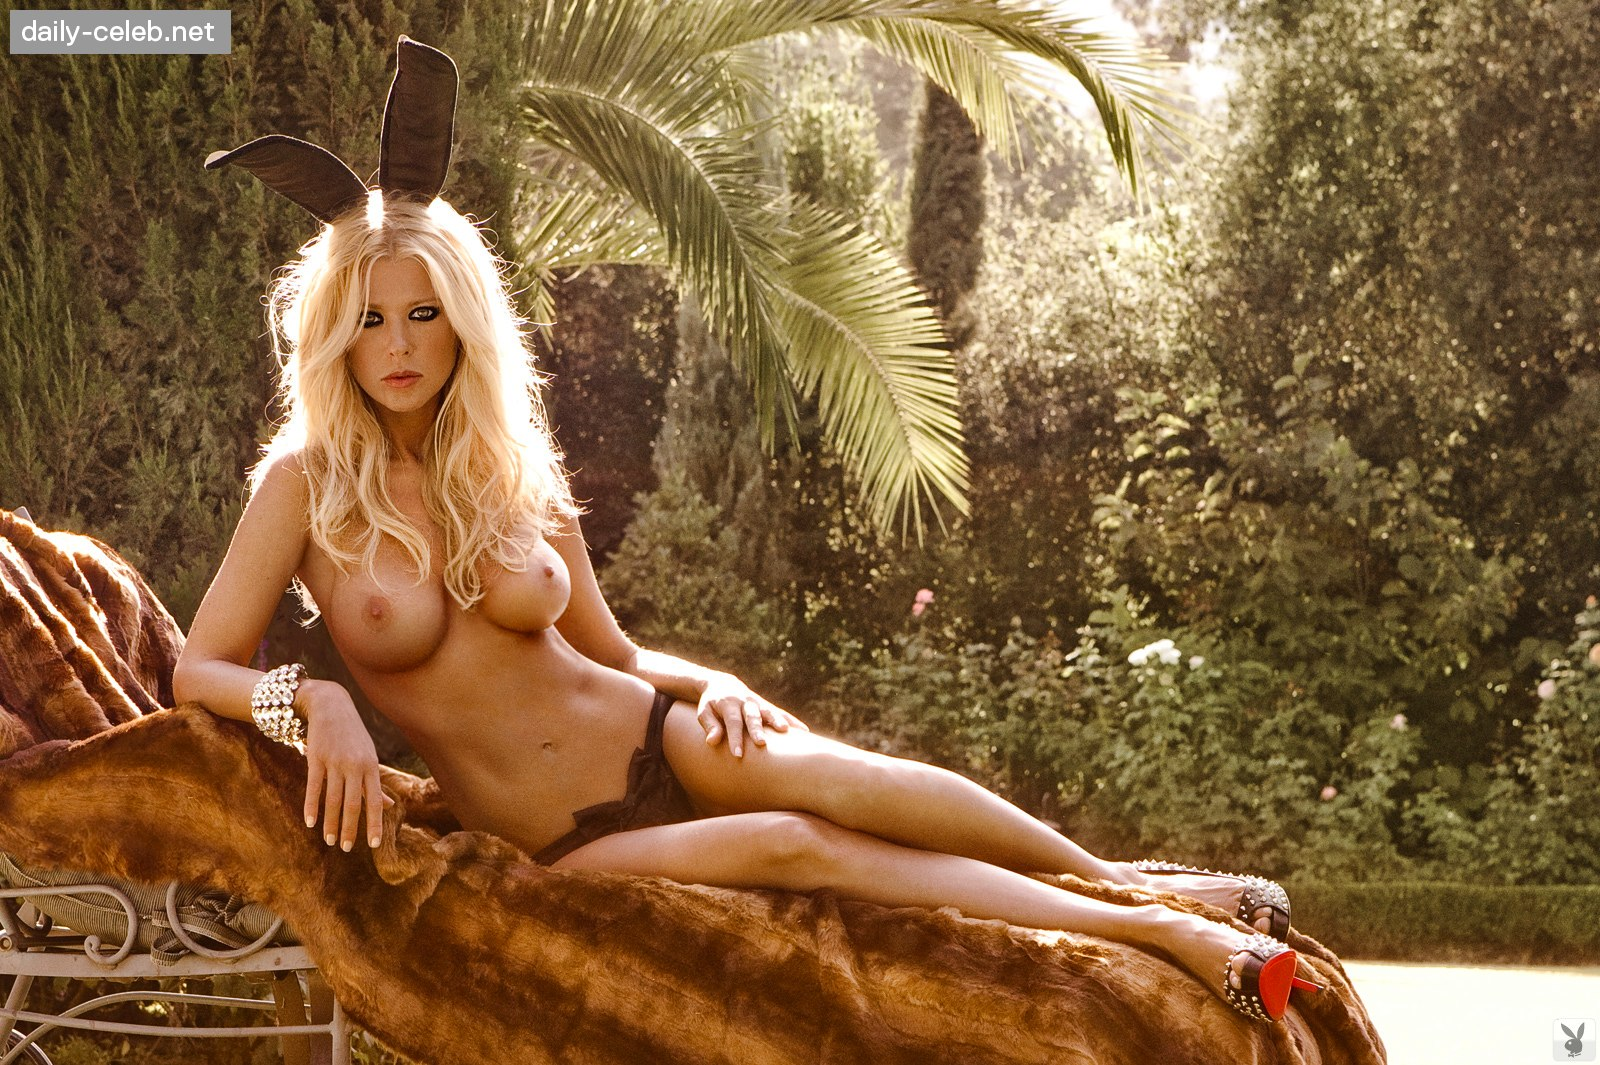 Nude Photos Of Tara Reid 54